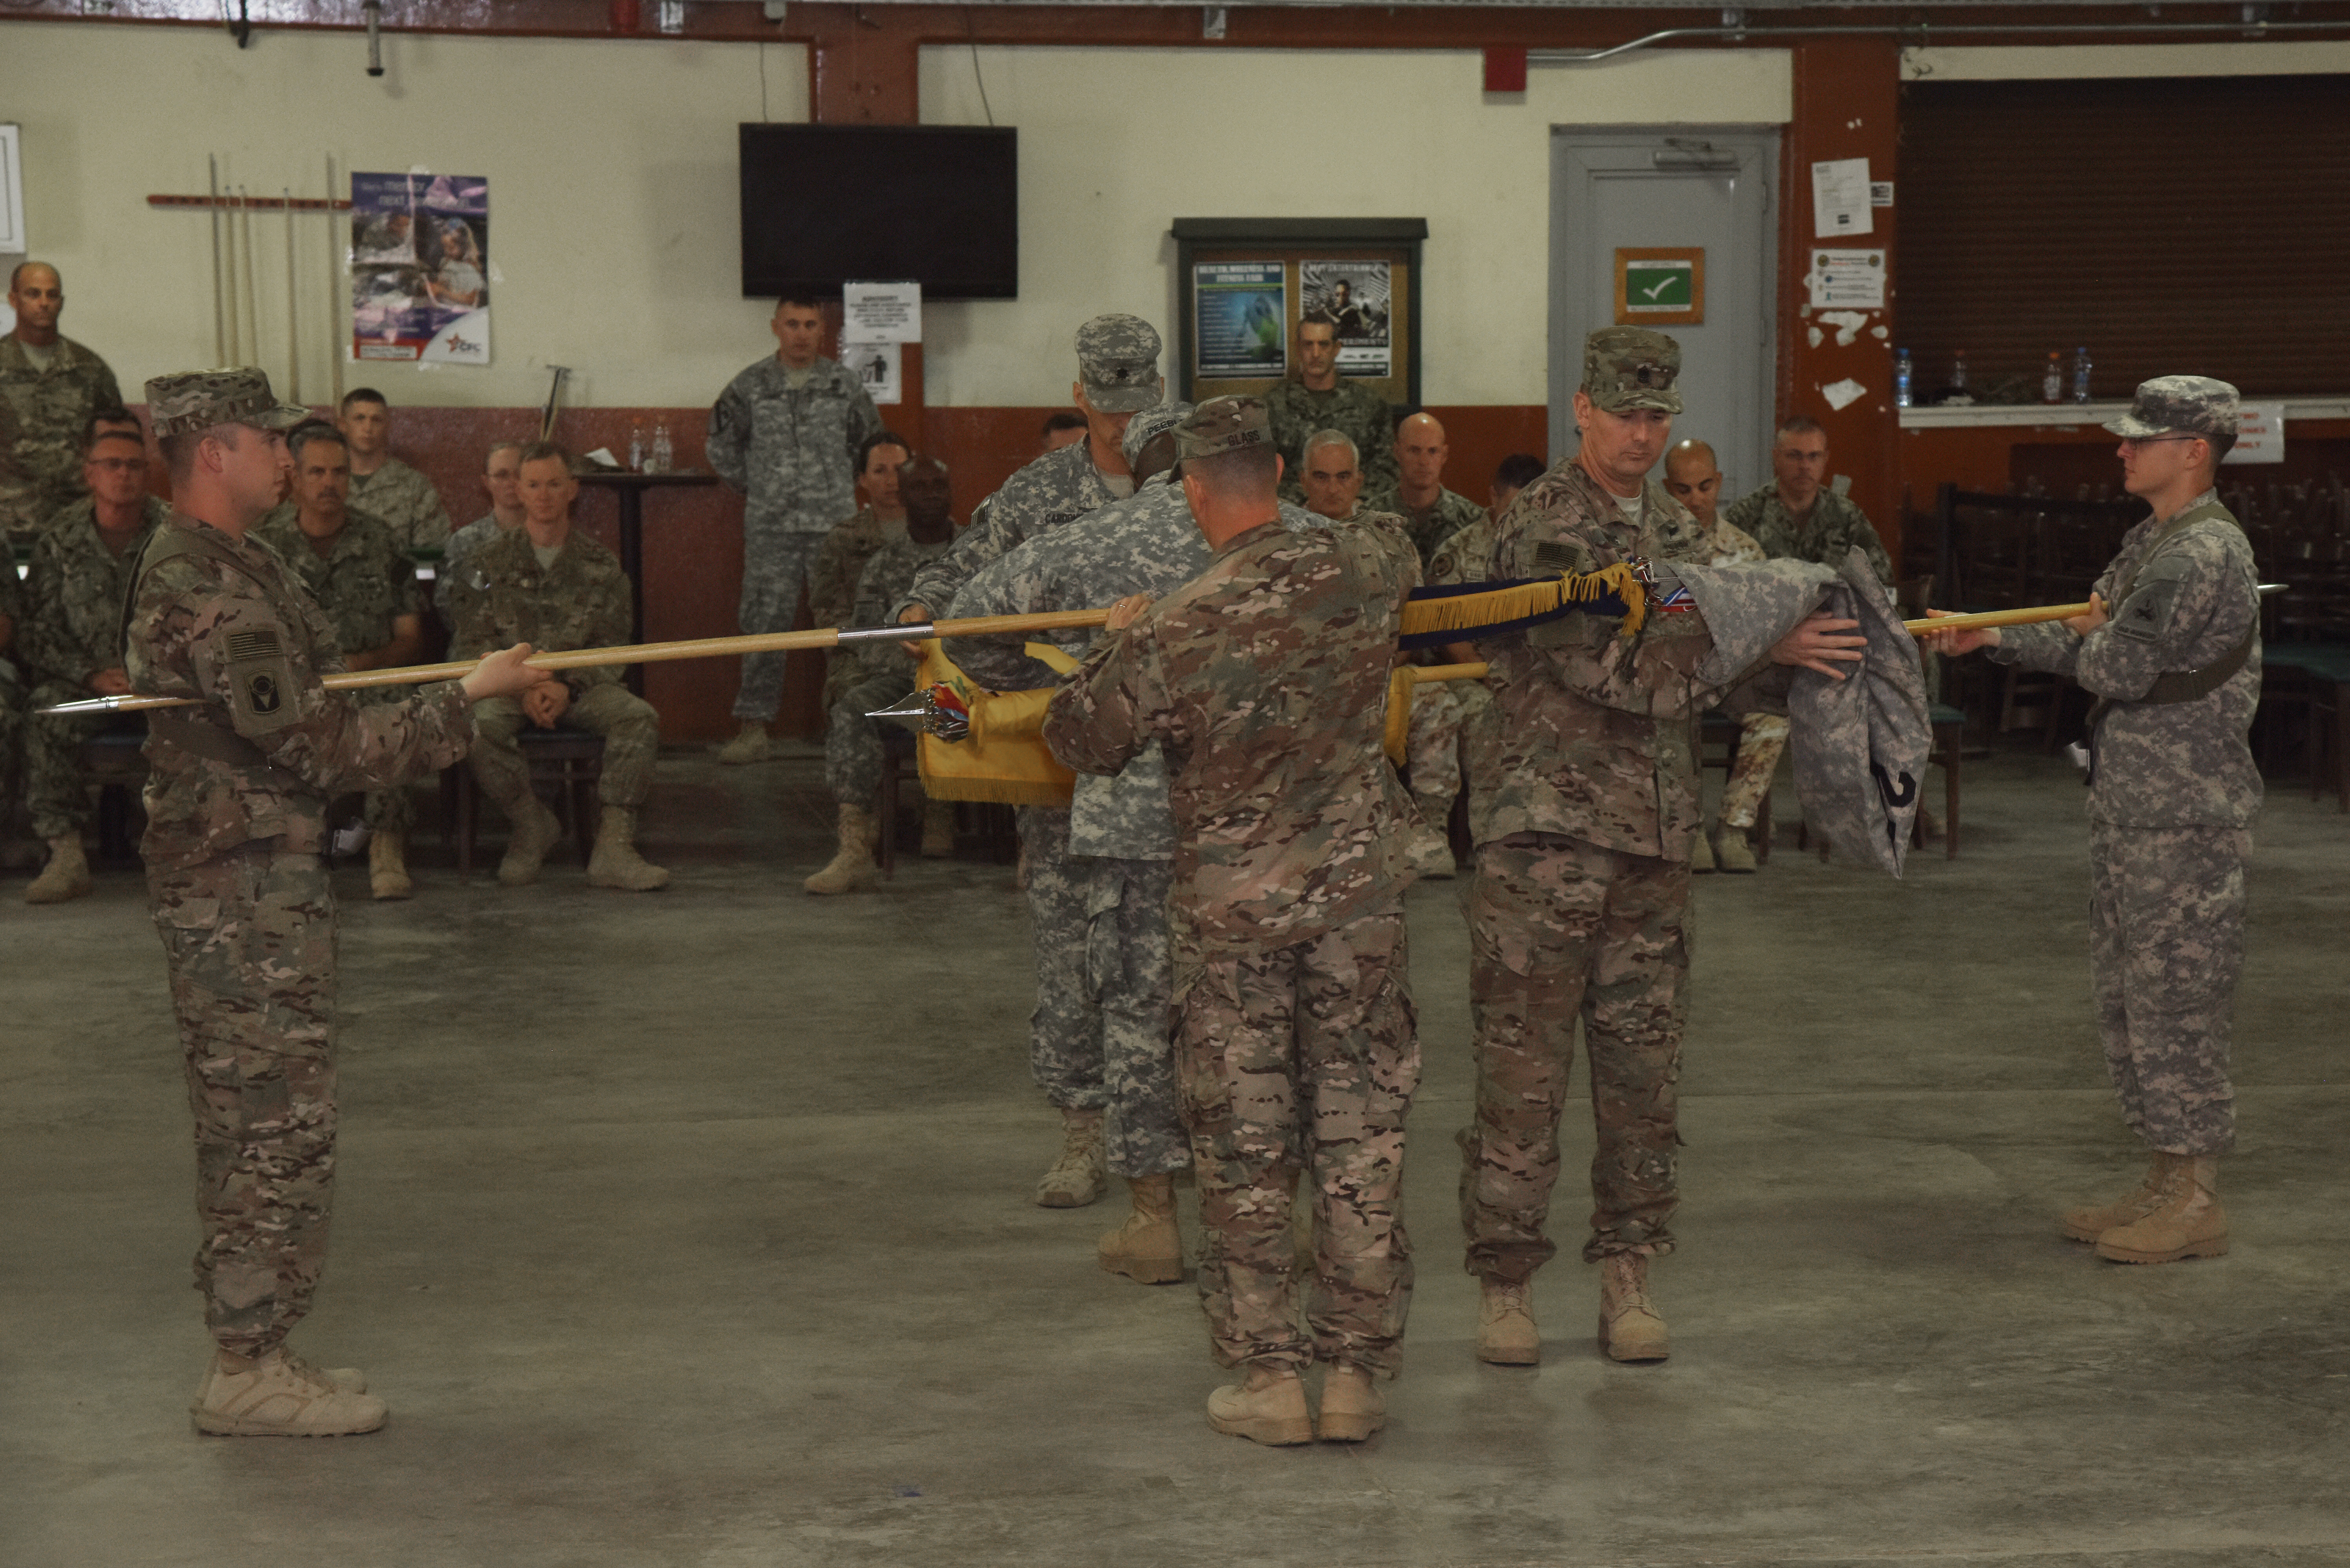 1st Battalion, 77th Armor Regiment flag is rolled, and the 2nd BN, 124th Infantry Regiment flag is unrolled during a transfer of authority ceremony at Camp Lemonnier, Djibouti, Sept. 24, 2015.  The regimental colors are a physical symbol of a unit's pride.  The casing of the 1st BN, 77th AR colors signify it's mission completion, while the uncasing of the 2nd BN, 124th IR colors signifies its preparedness to assume its role within Combined Joint Task Force-Horn of Africa.  (U.S. Air Force photo by Staff Sgt. Maria Bowman)